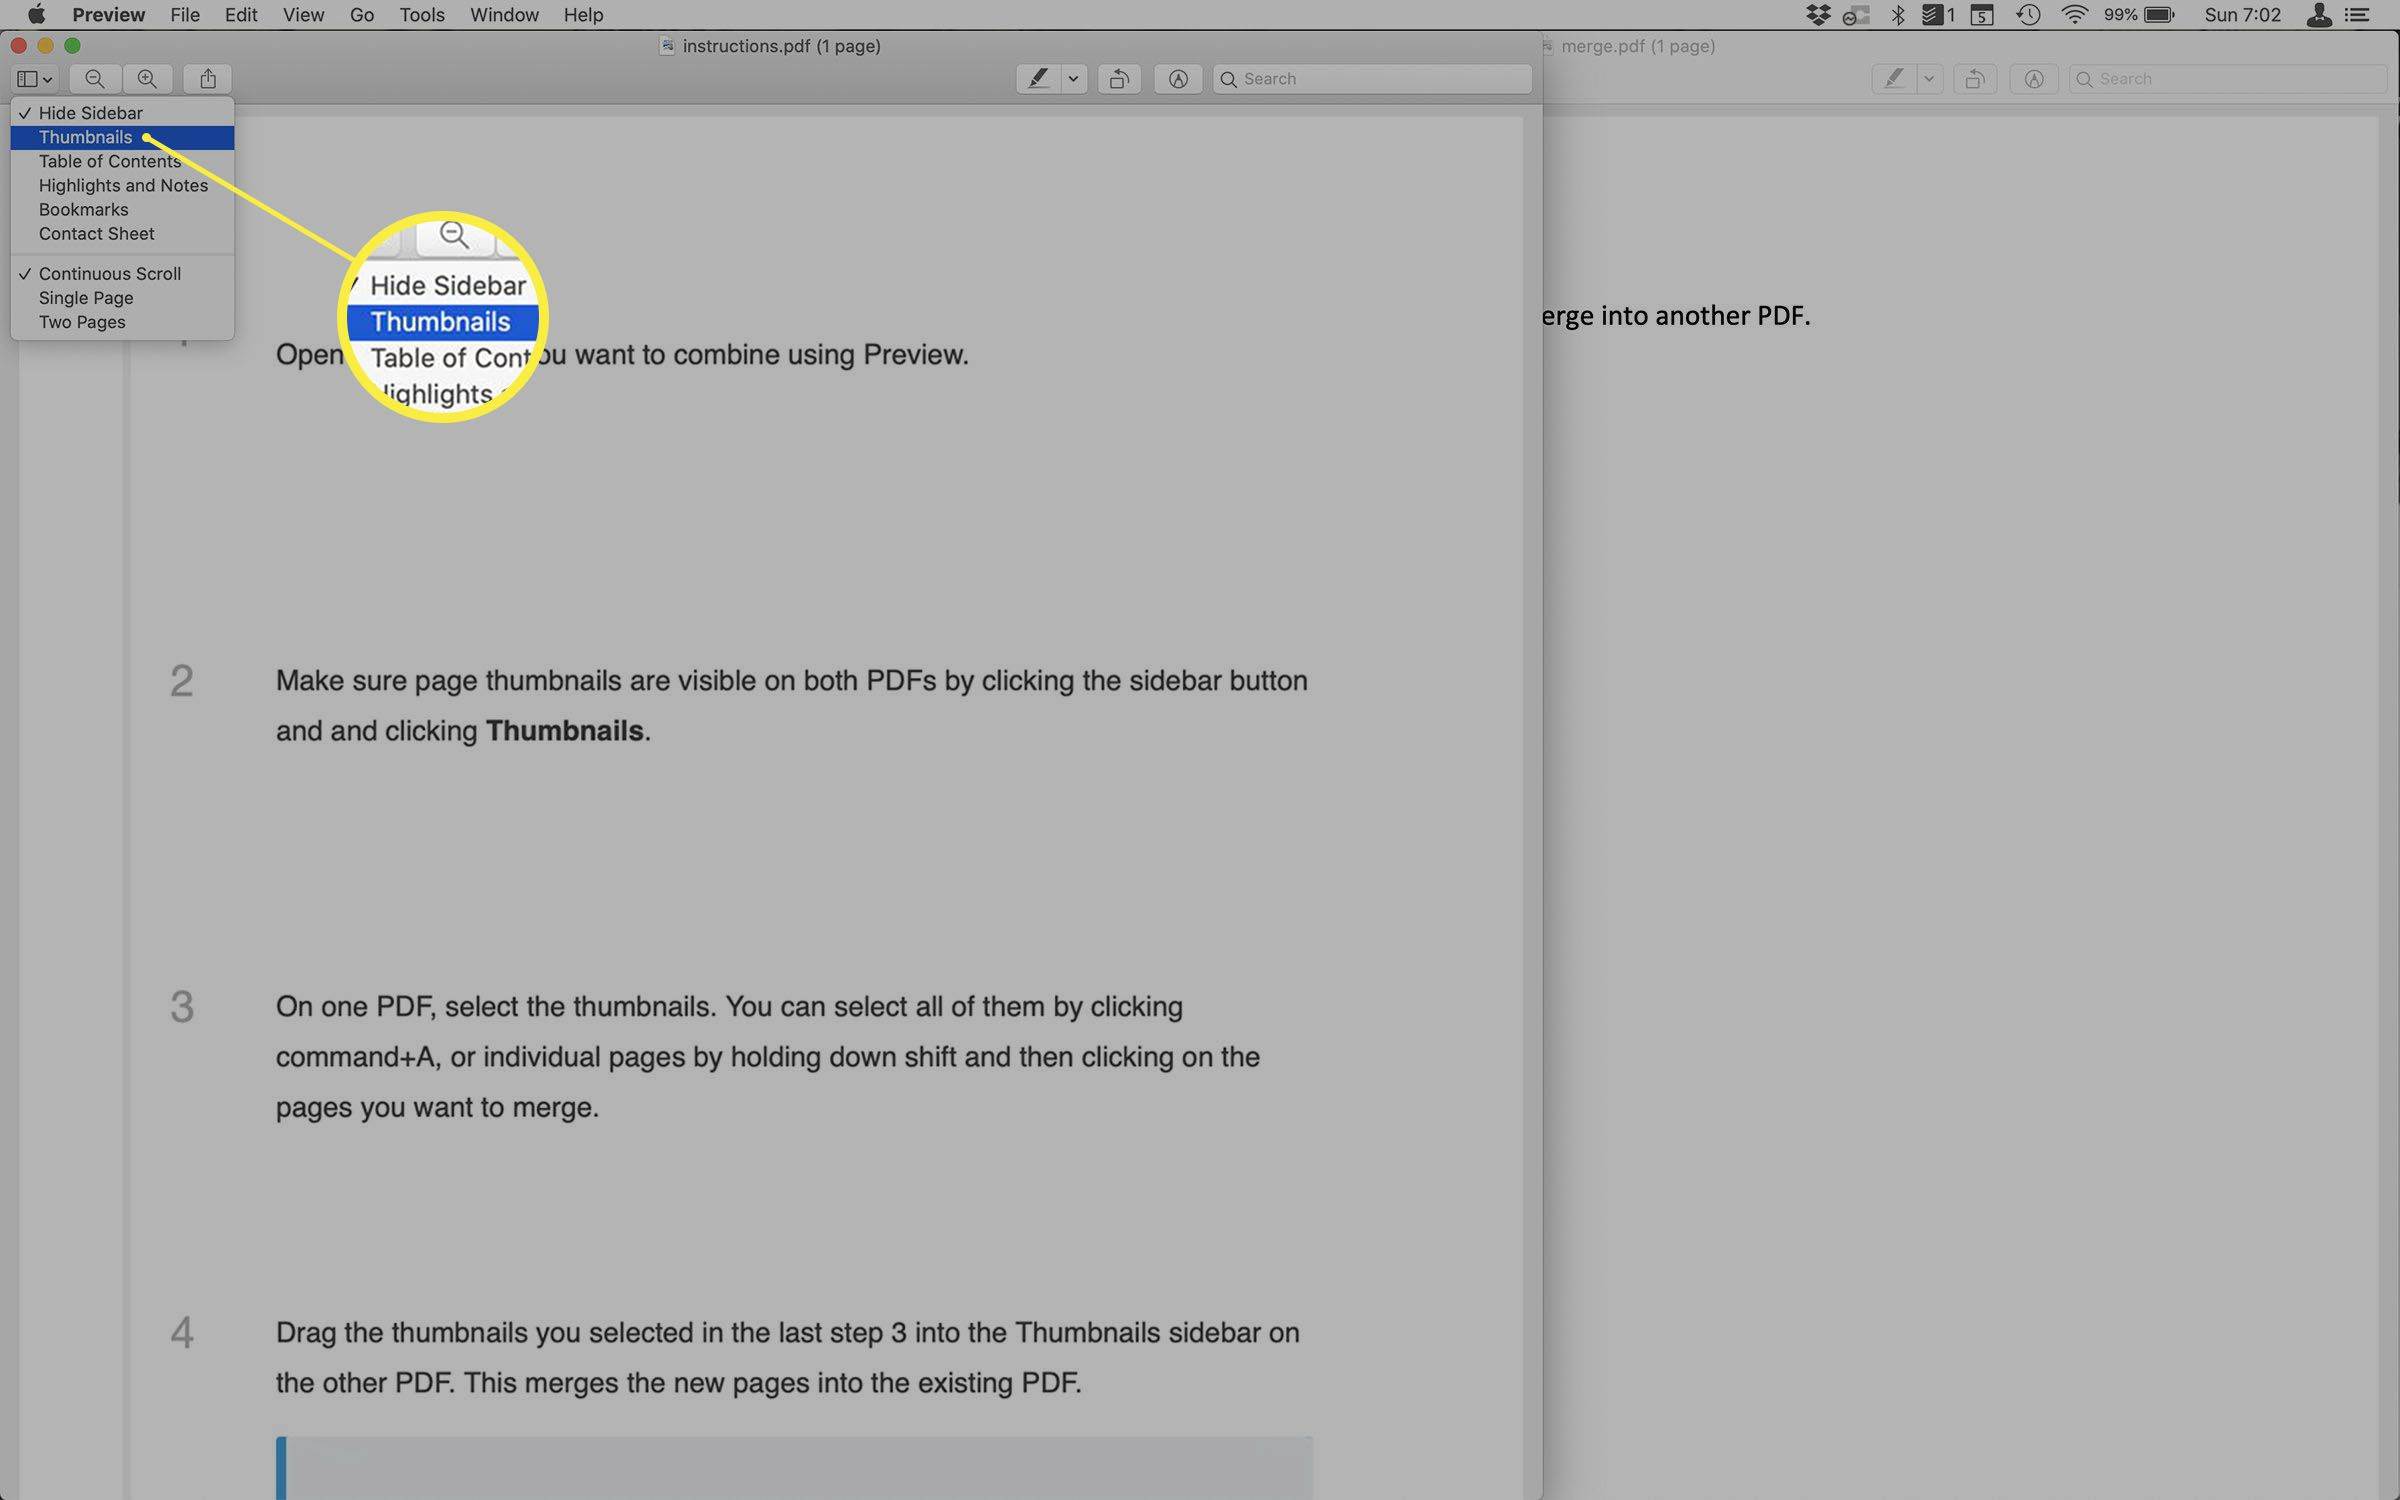 Screenshot of enabling the Thumbnails view in Preview.